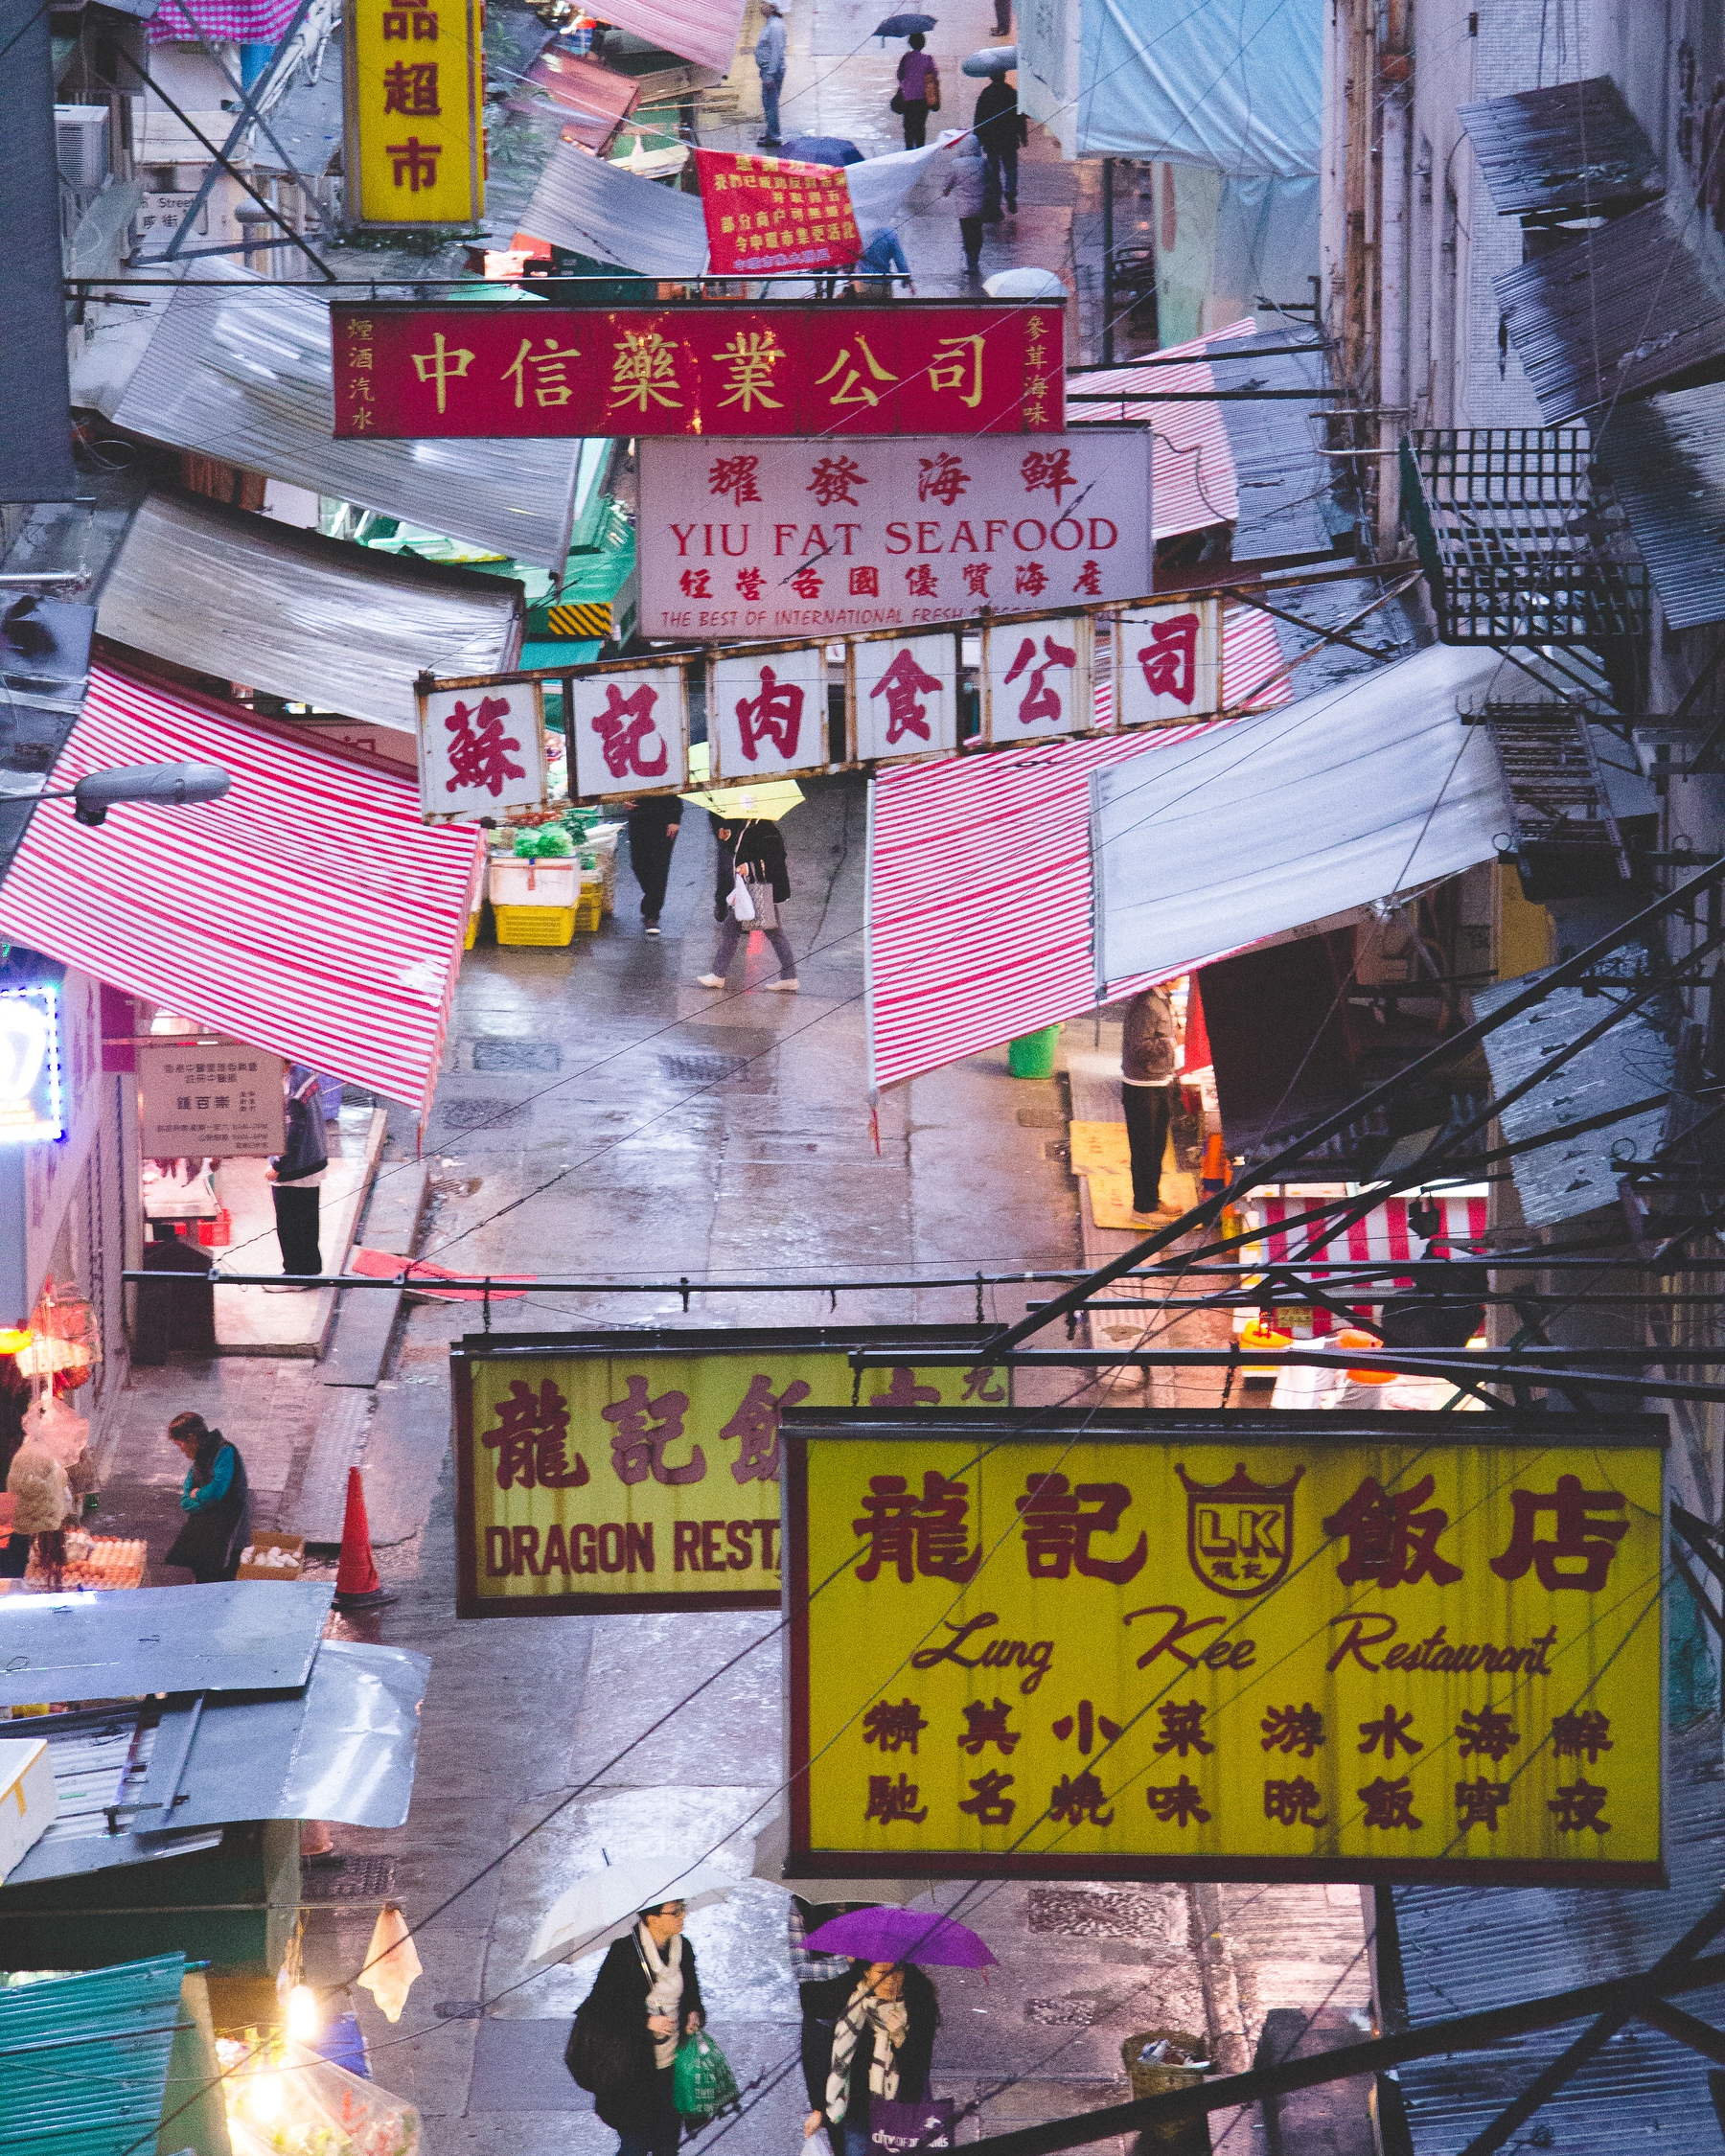 Hong Kong cuisine, a busy row of restaurants in Hong Kong